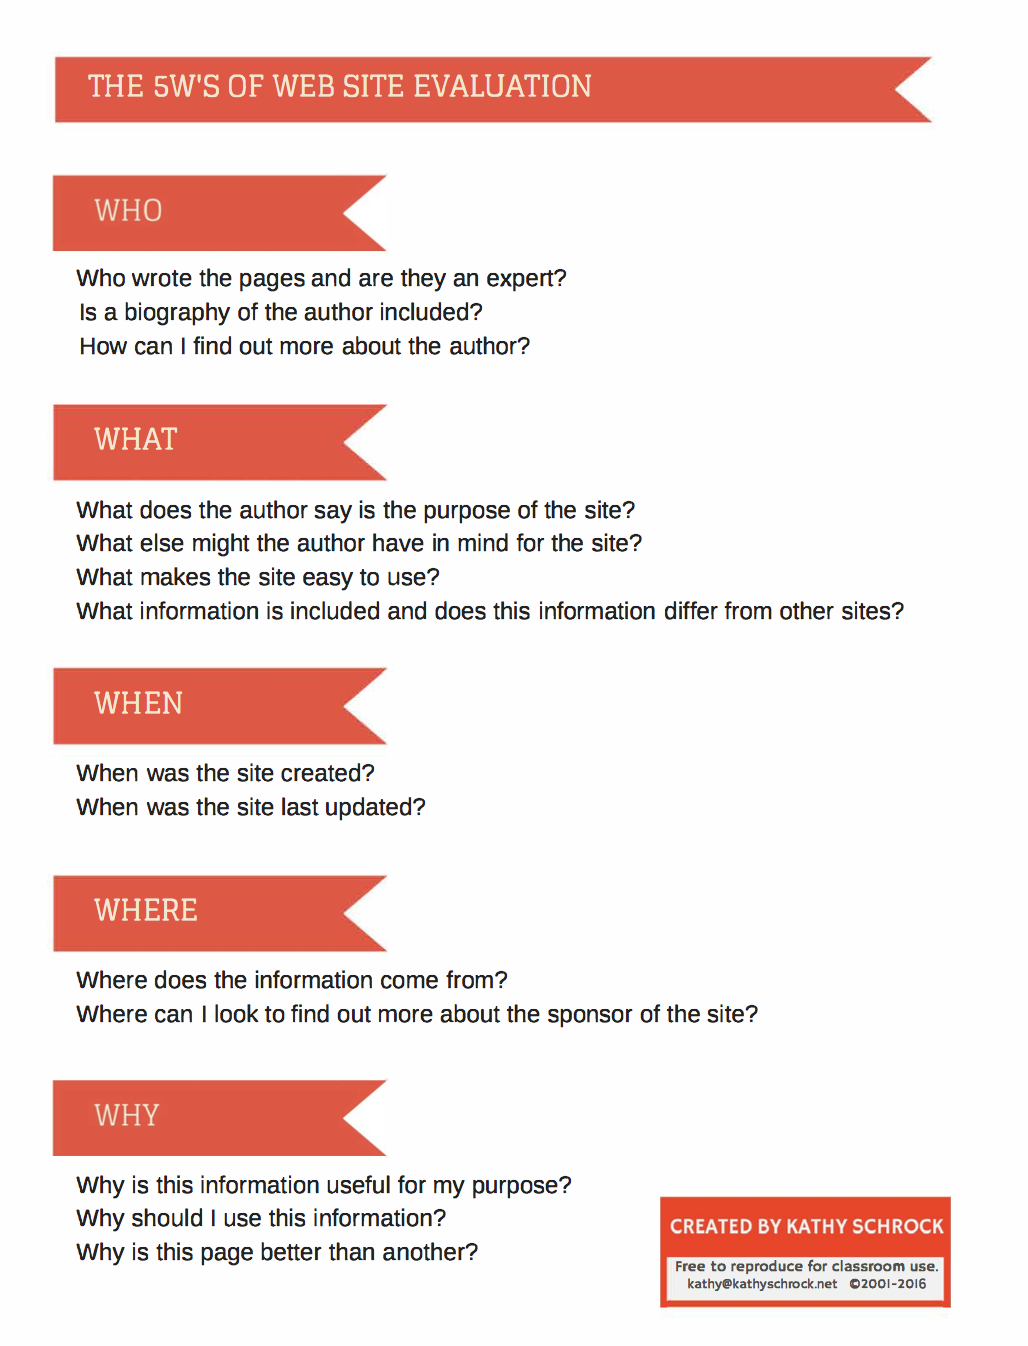 5 Ws of Website Evaluation